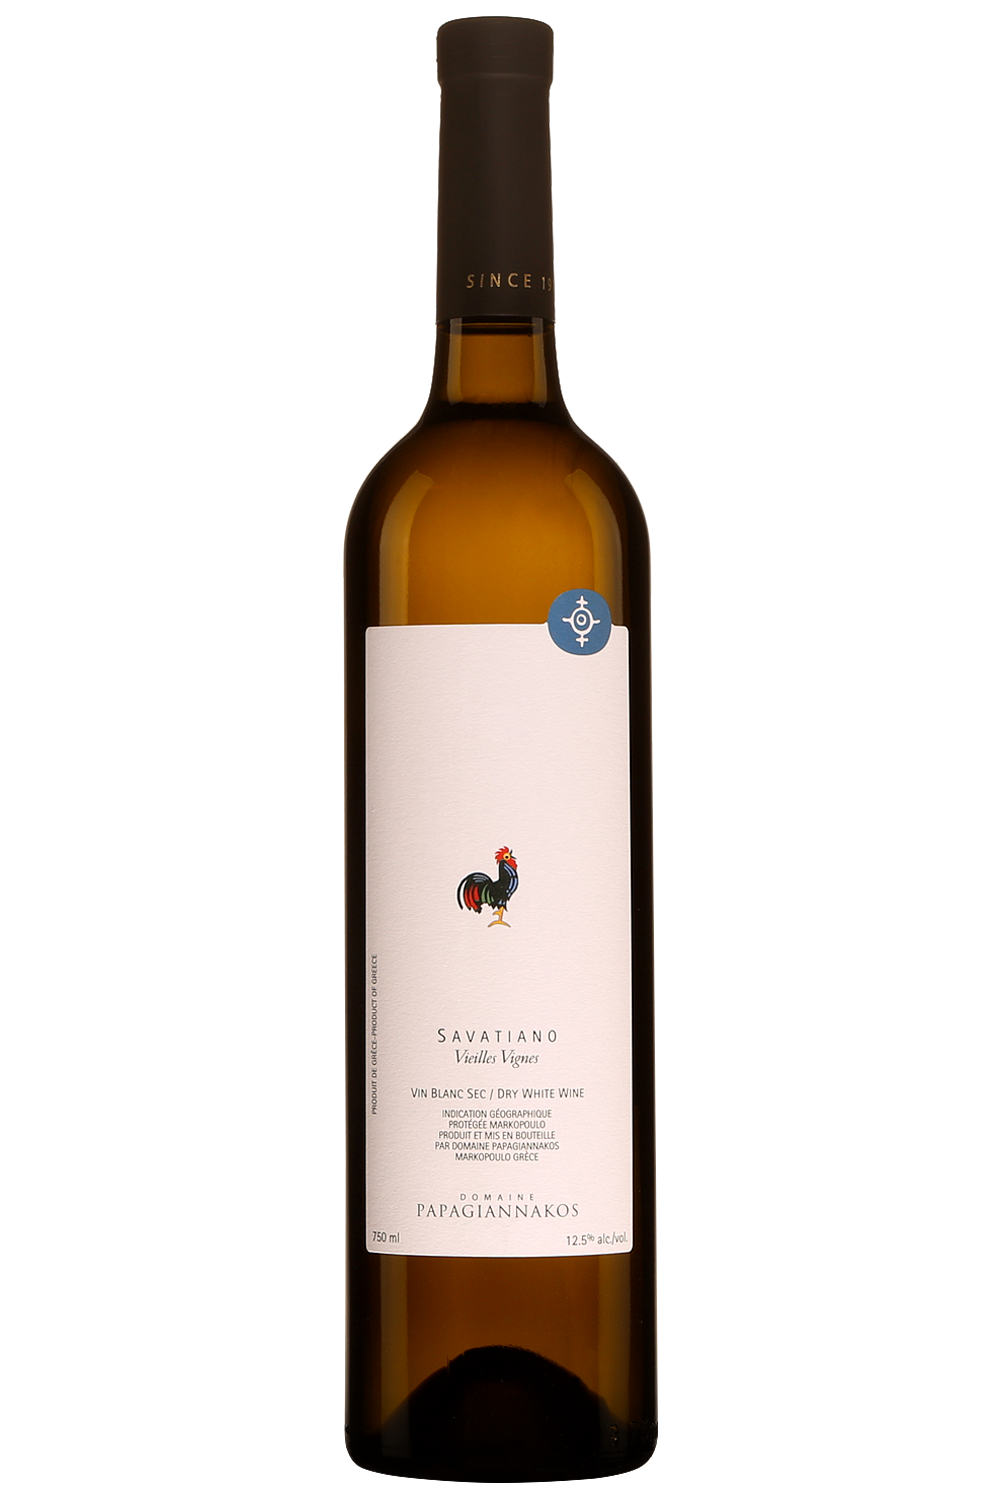 Domaine Papagiannakos Savatiano Markopoulo 2019